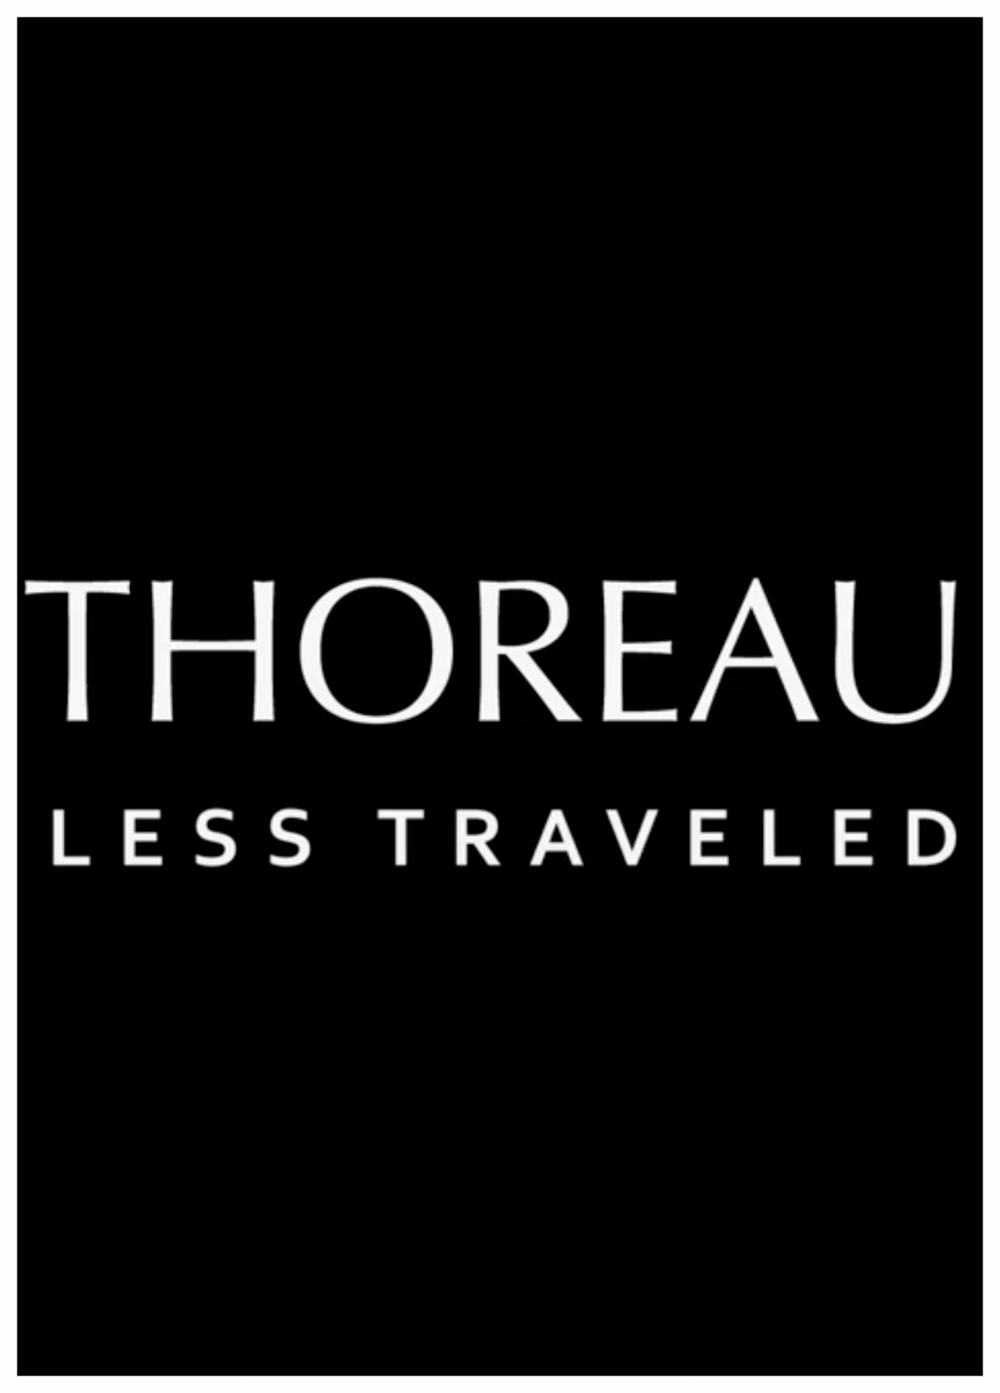 Thoreau Less Traveled